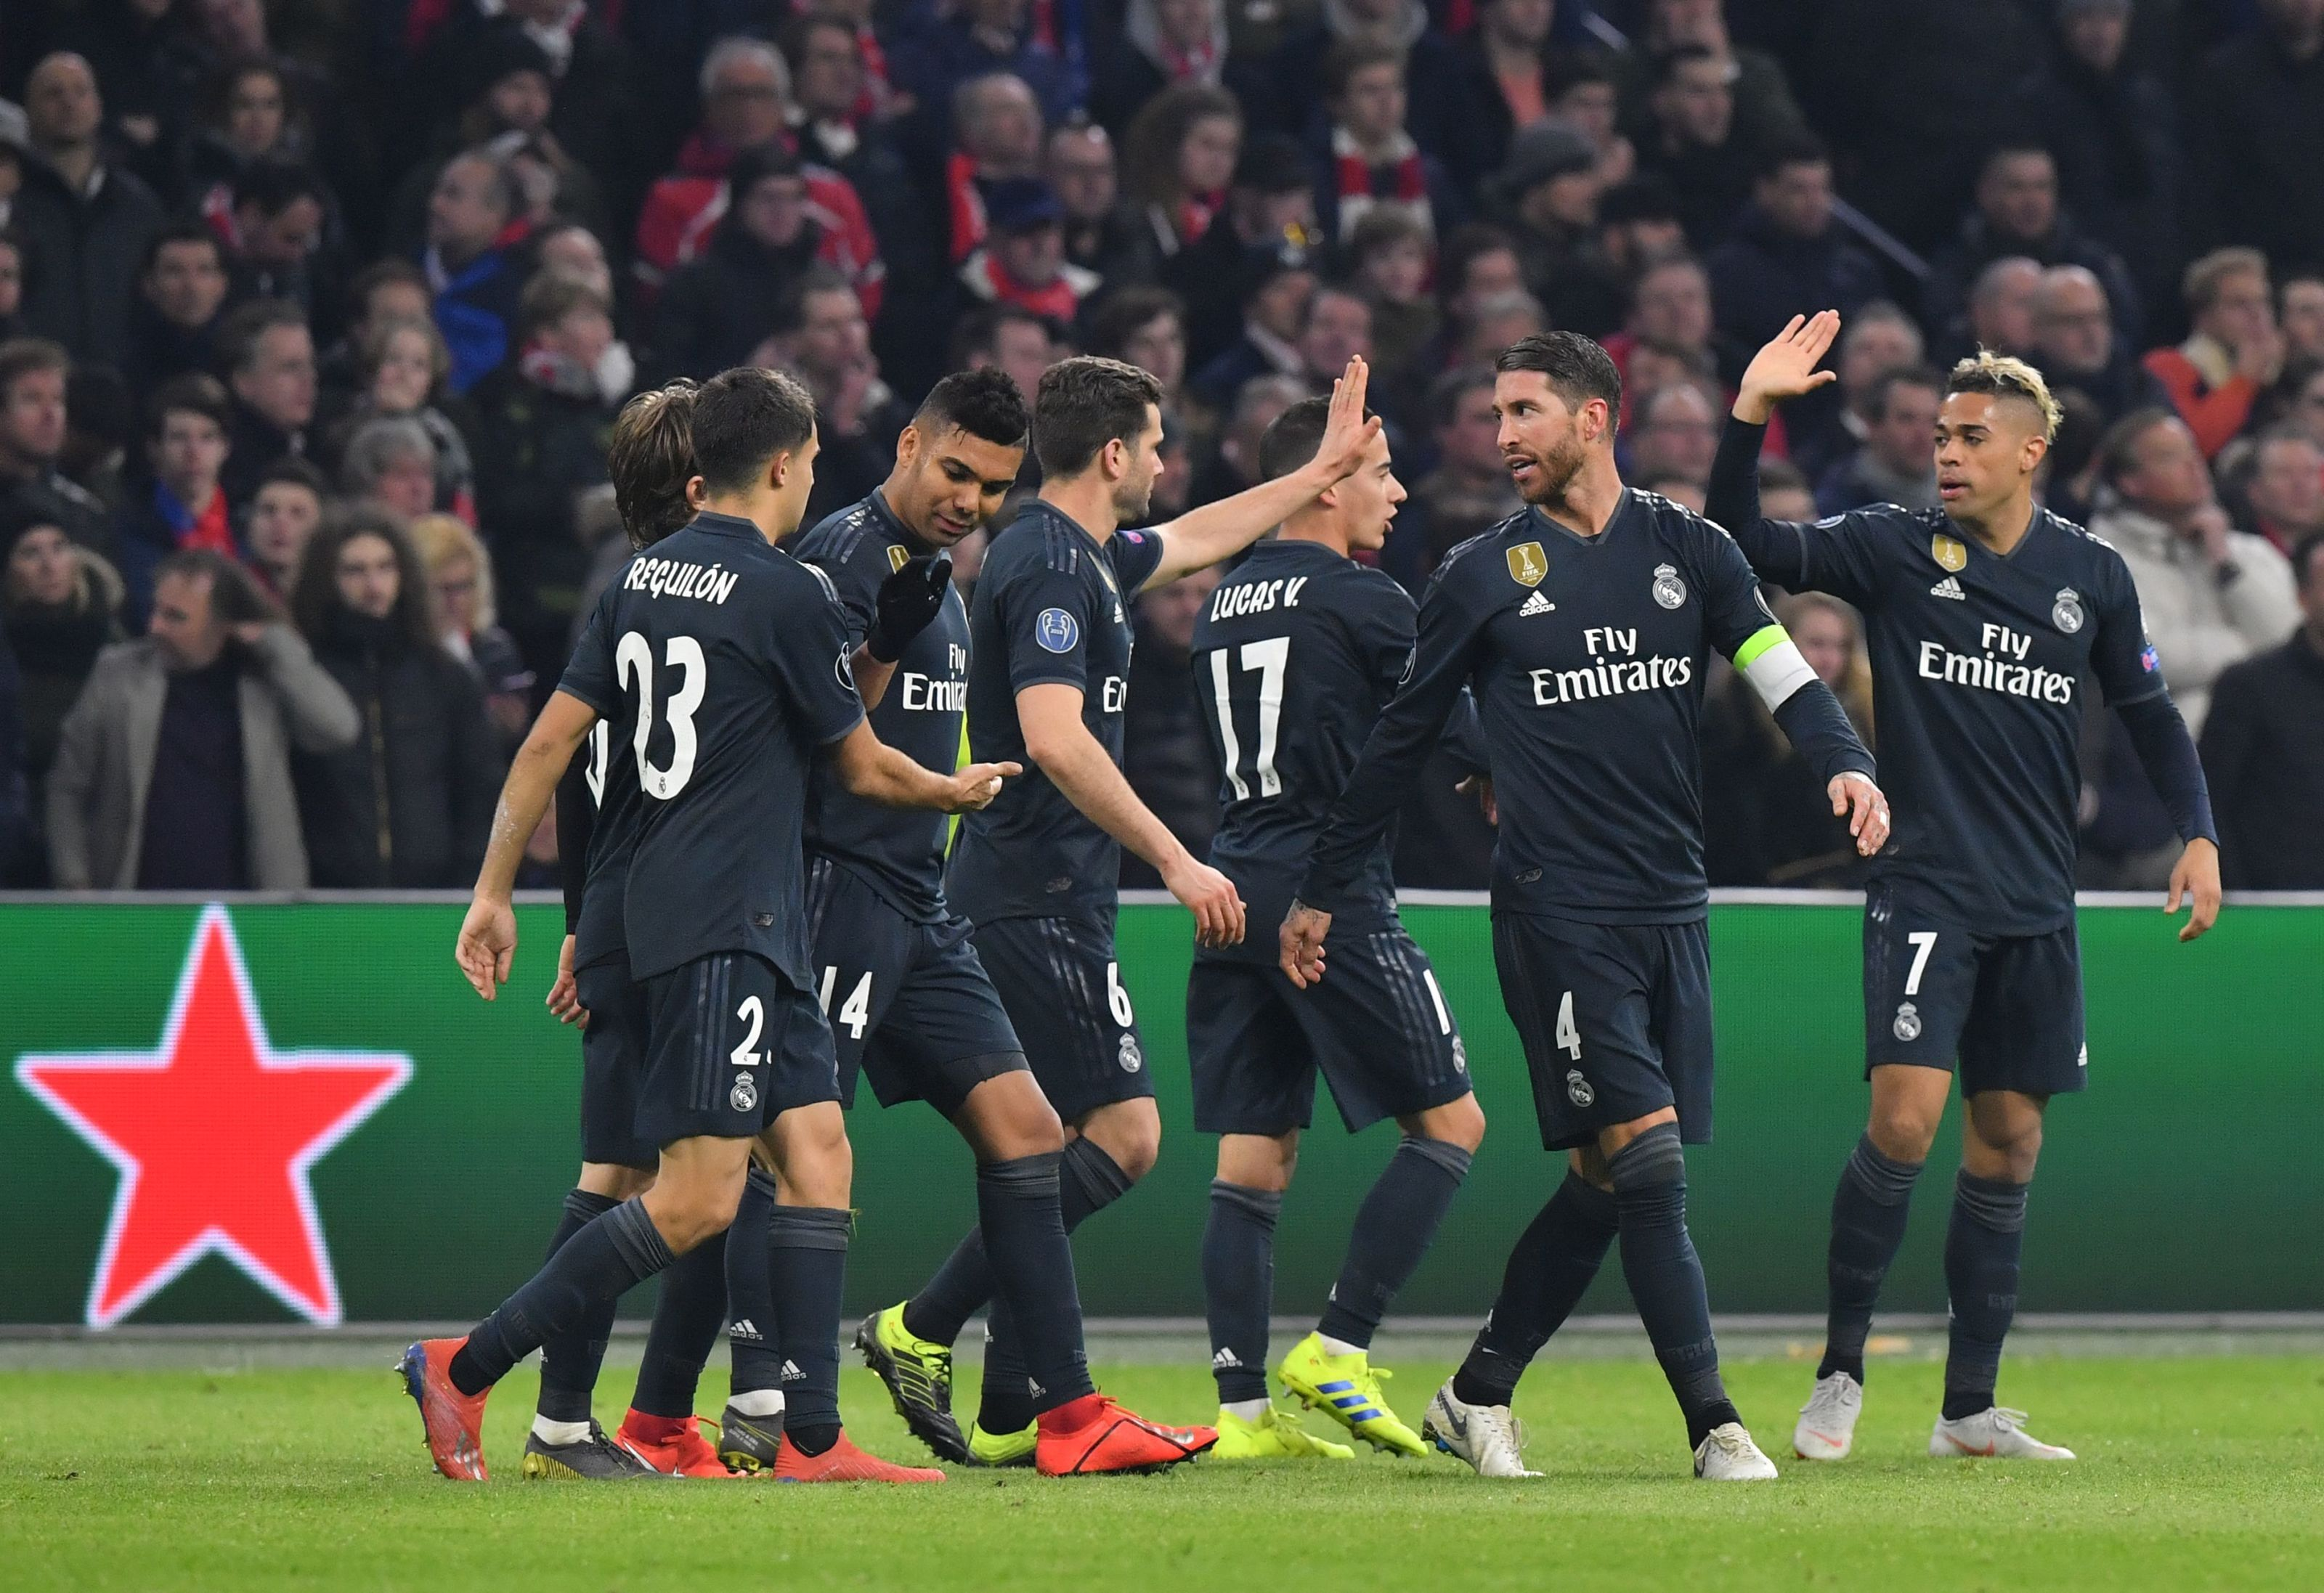 Player Ratings Real Madrid 2: Player Ratings As Real Madrid Snatch 2-1 Win Against Ajax